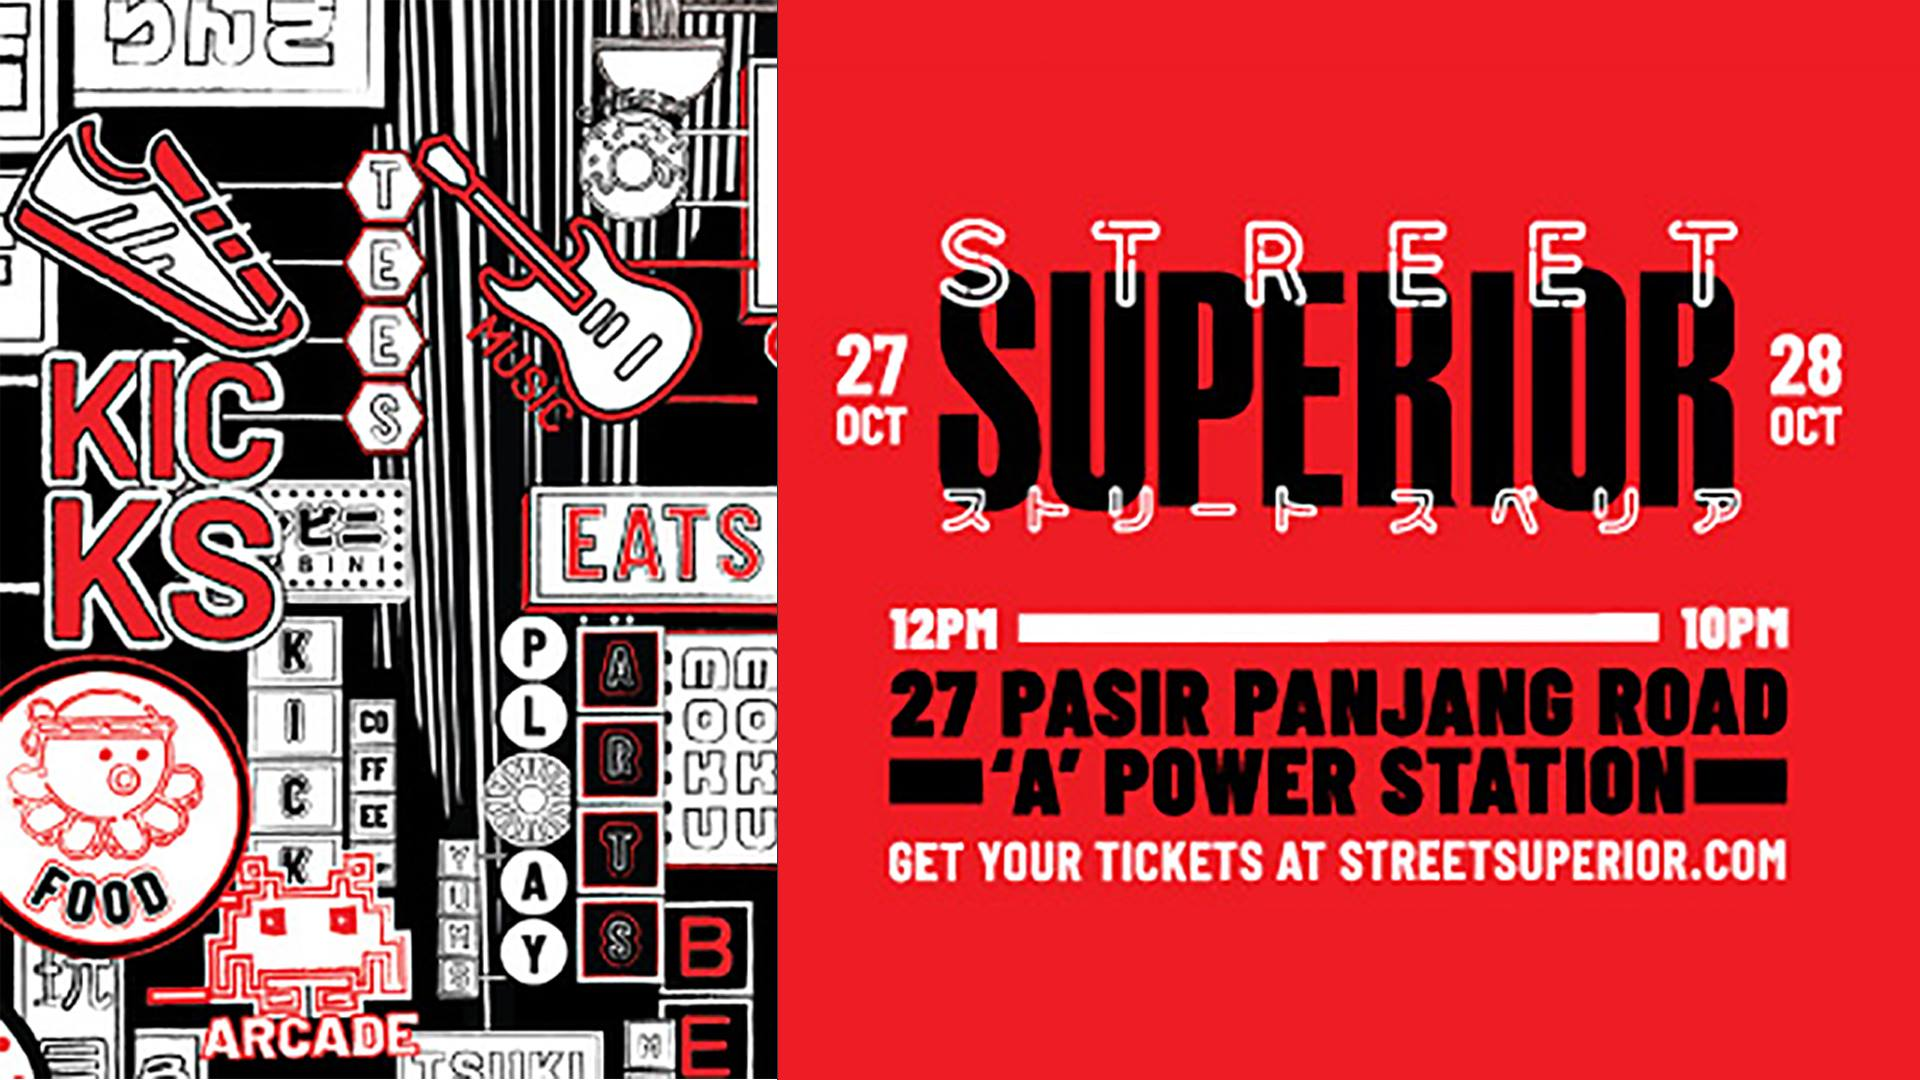 Street Superior 2018 Official Press Release - Introducing Street Superior Festival 2018